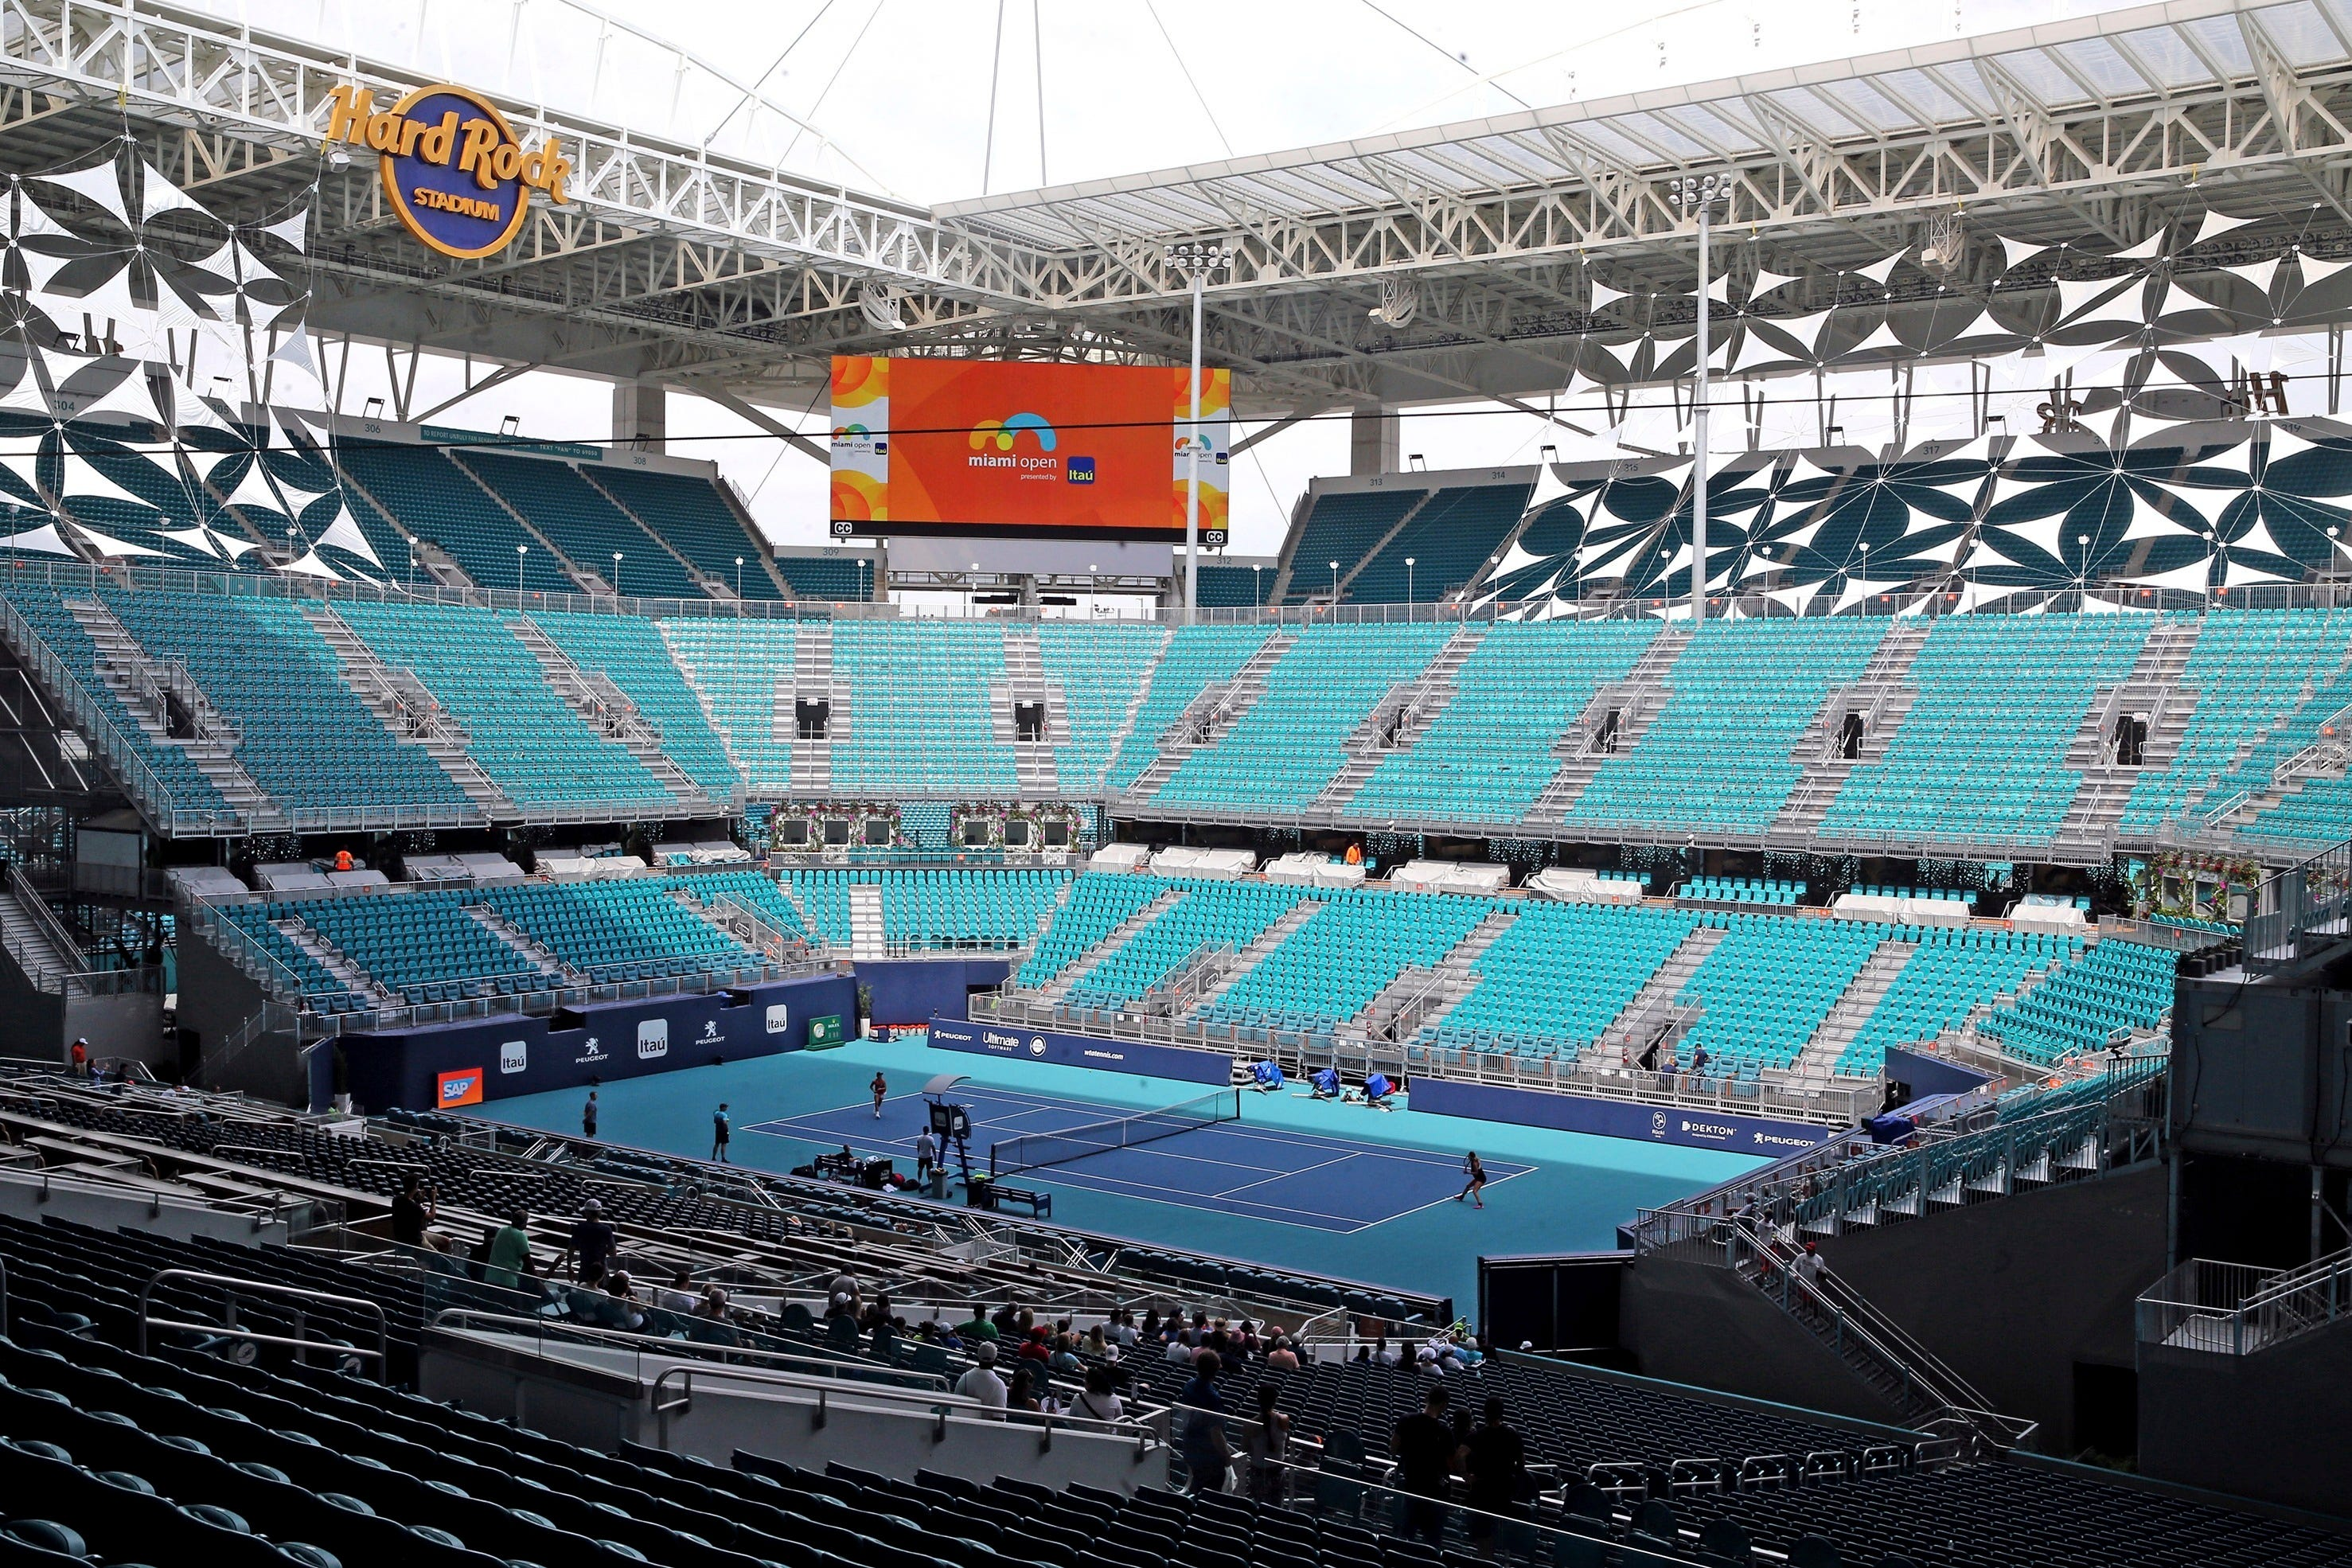 Changeover: Miami Open tennis tournament moves to Dolphins' NFL home